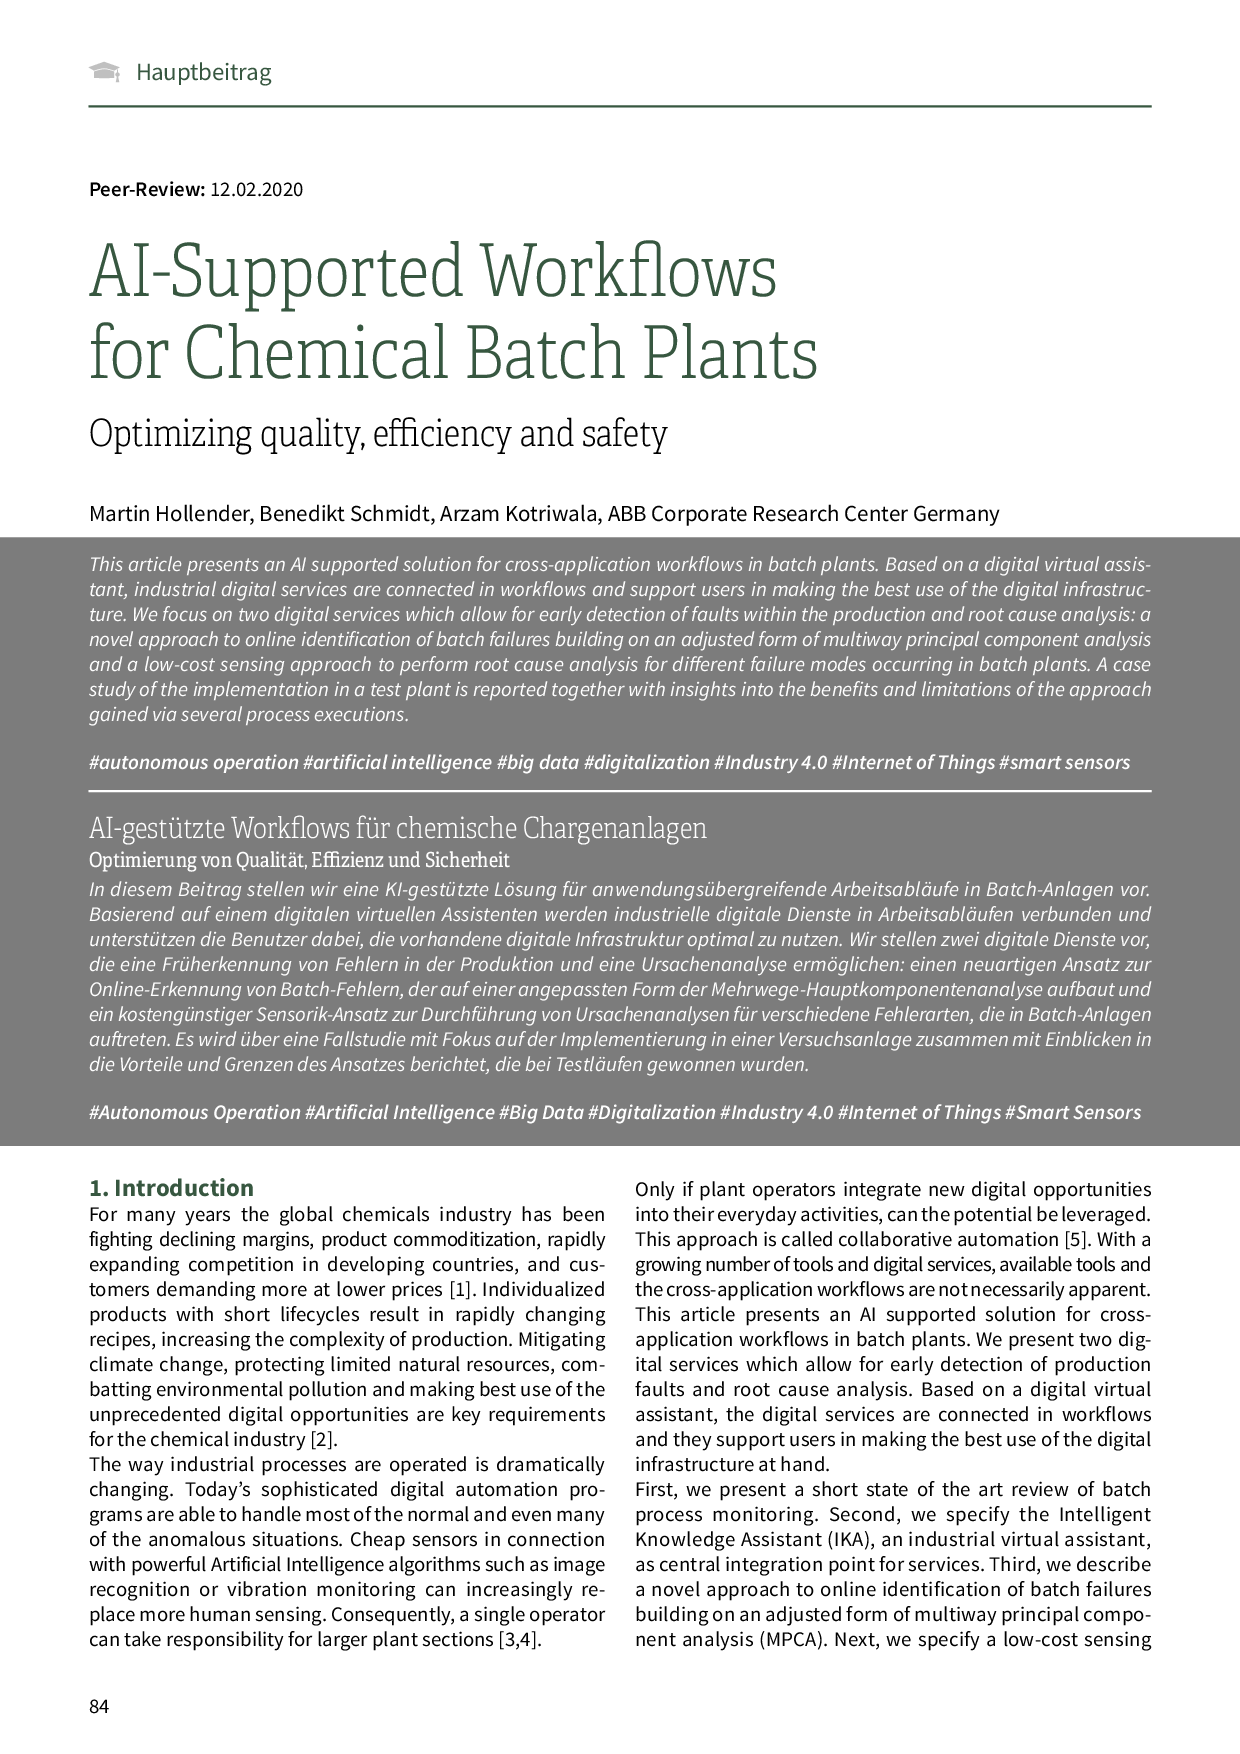 AI-Supported Workflows for Chemical Batch Plants